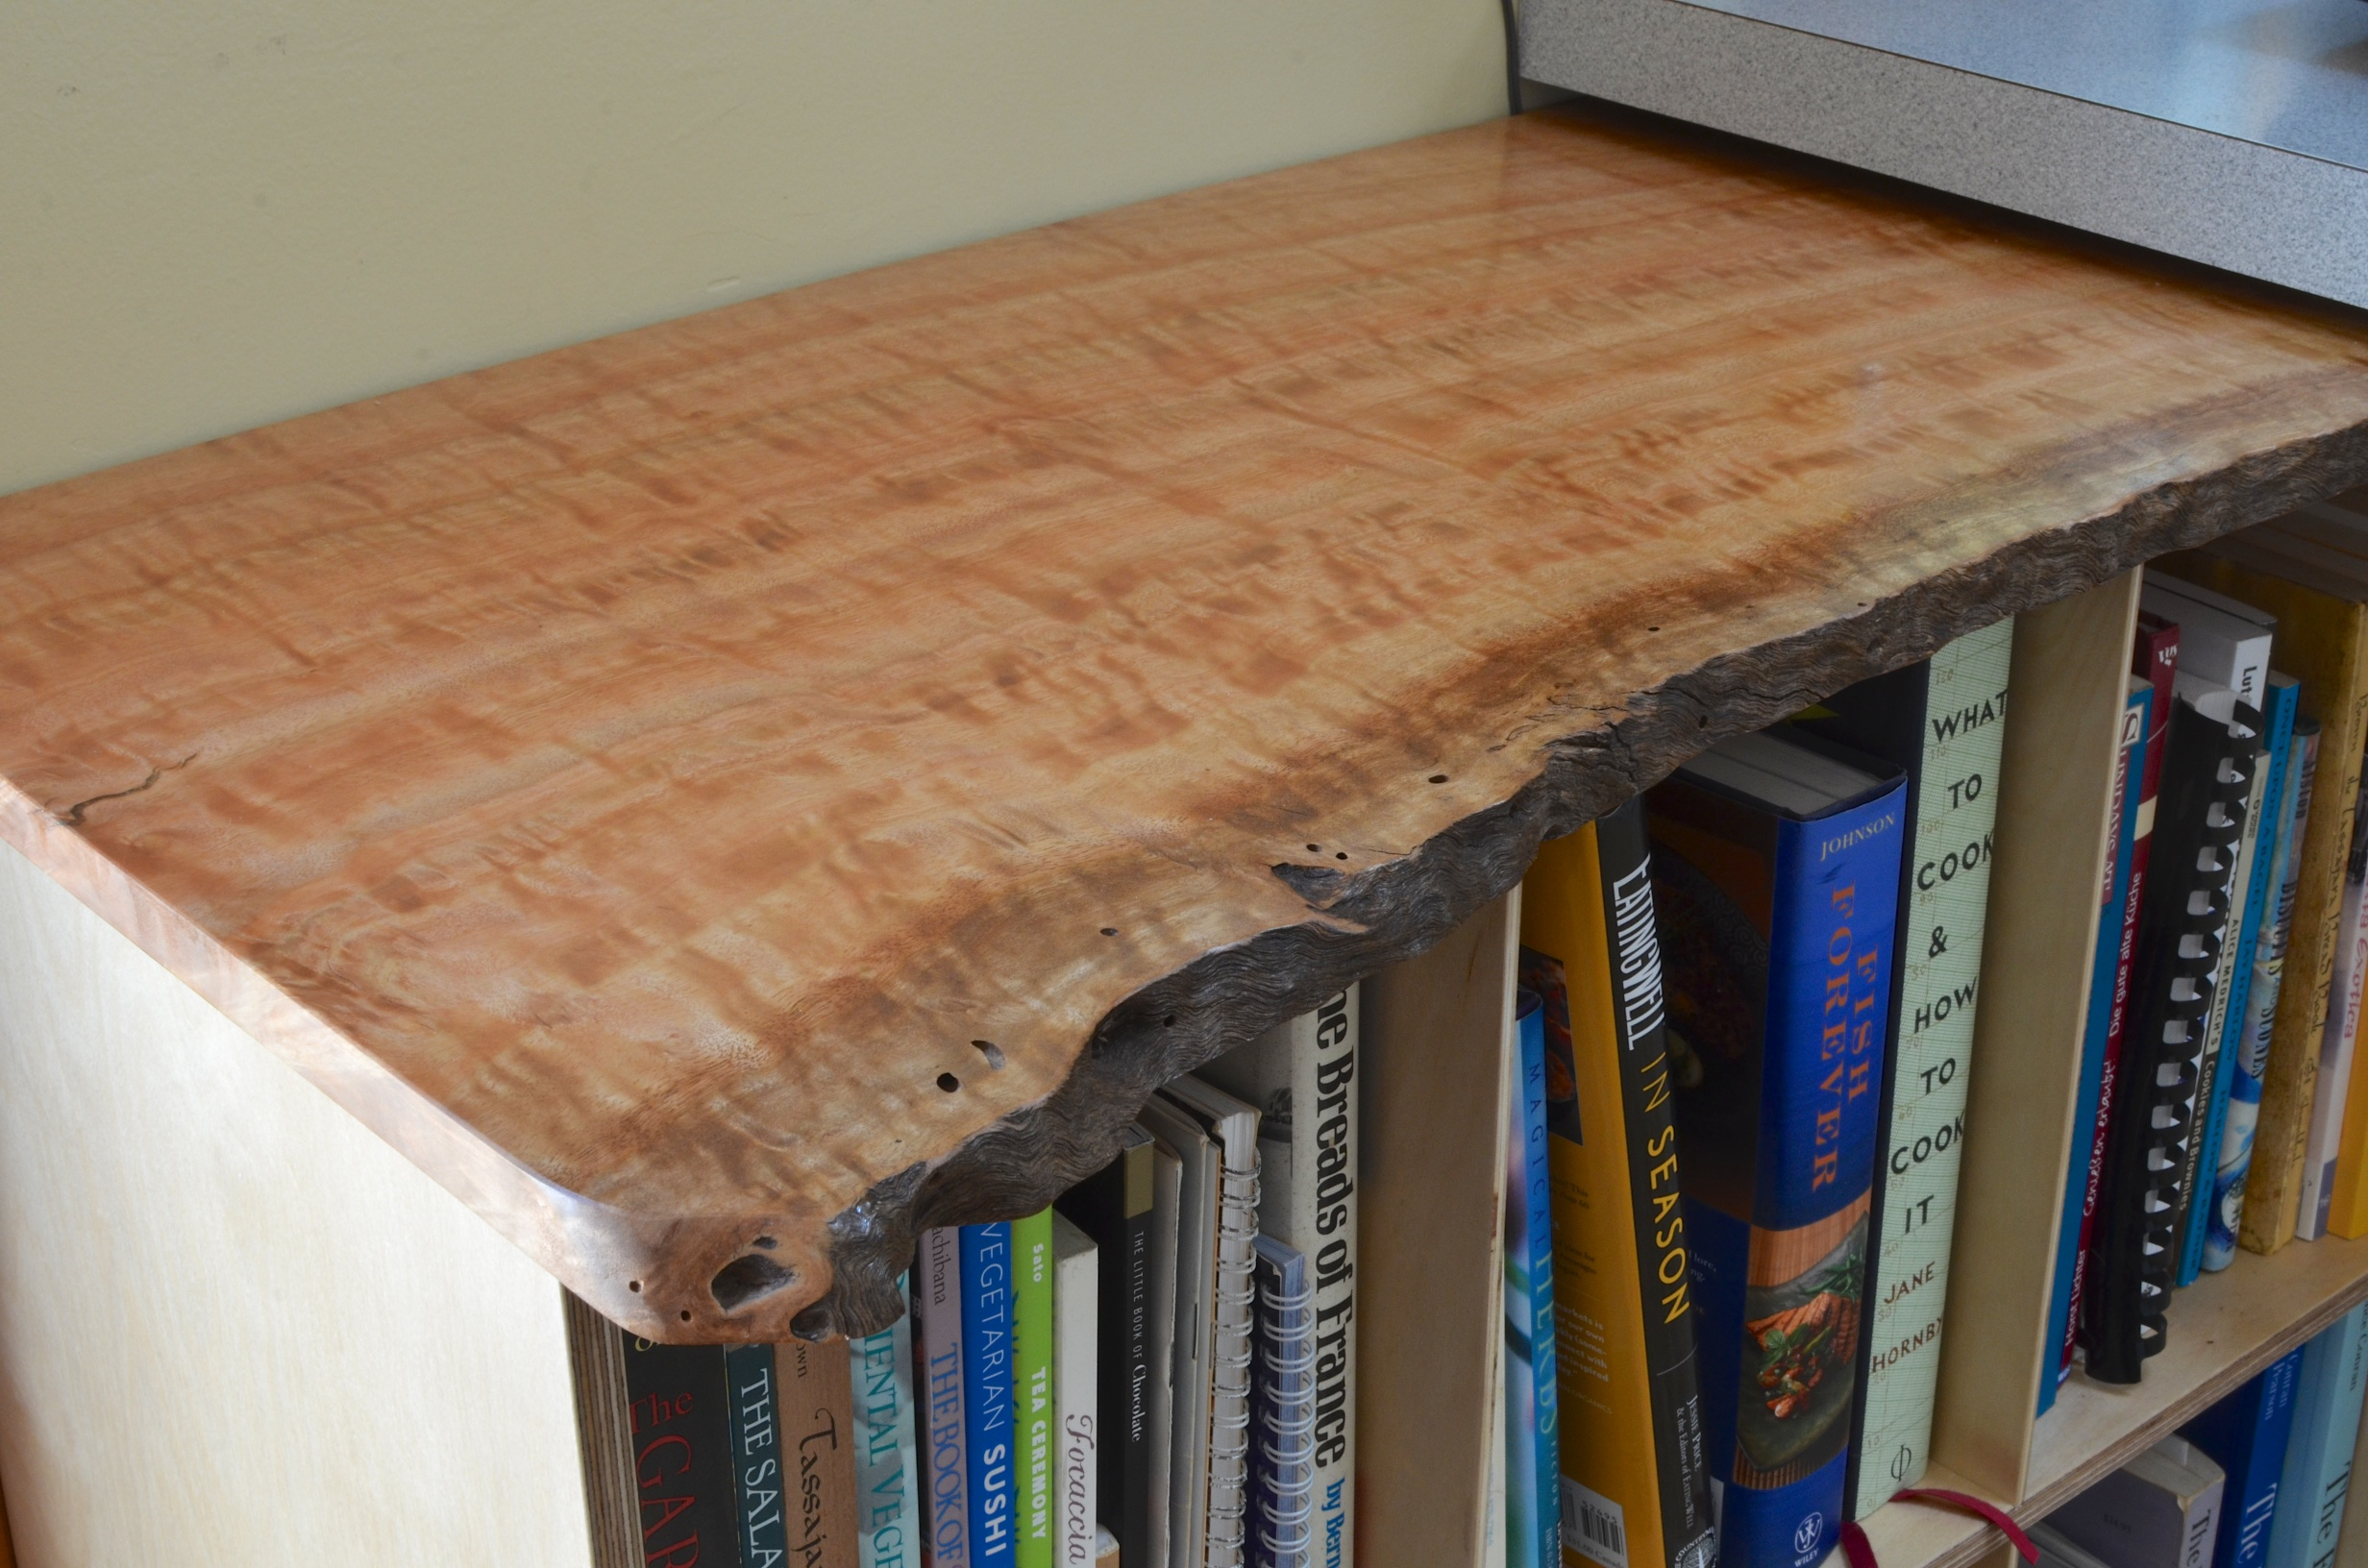 Cookbook Shelf. A piece of figured eucalyptus and birch fin-ply made a nice home for some formerly free ranging cookbooks.